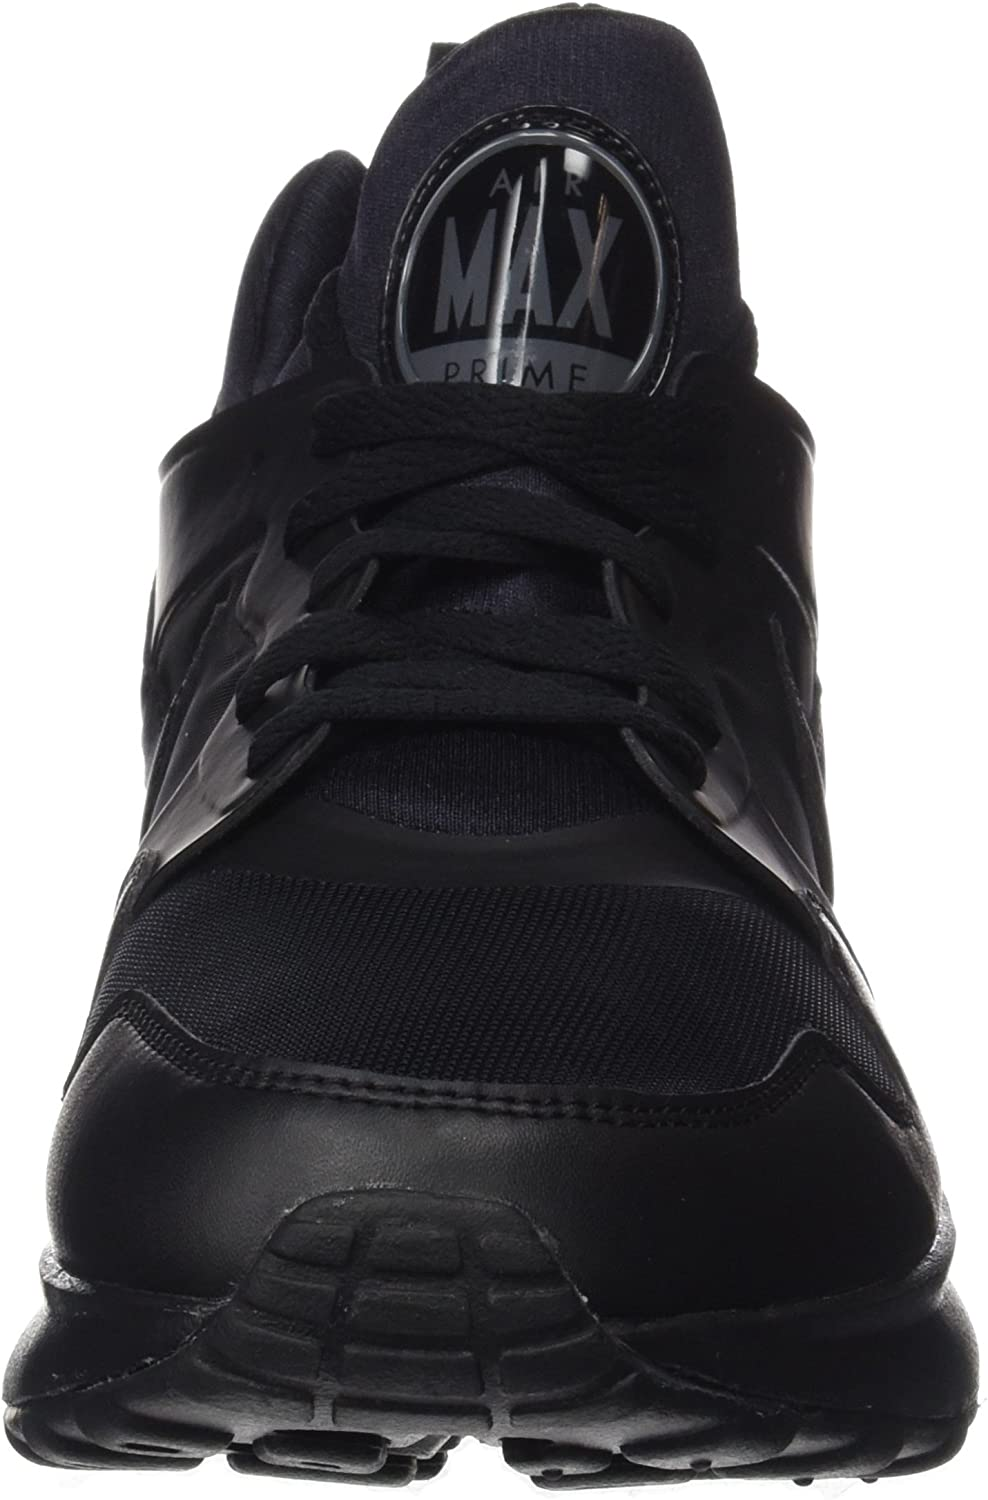 Nike Men's Air Max Prime Running Shoe